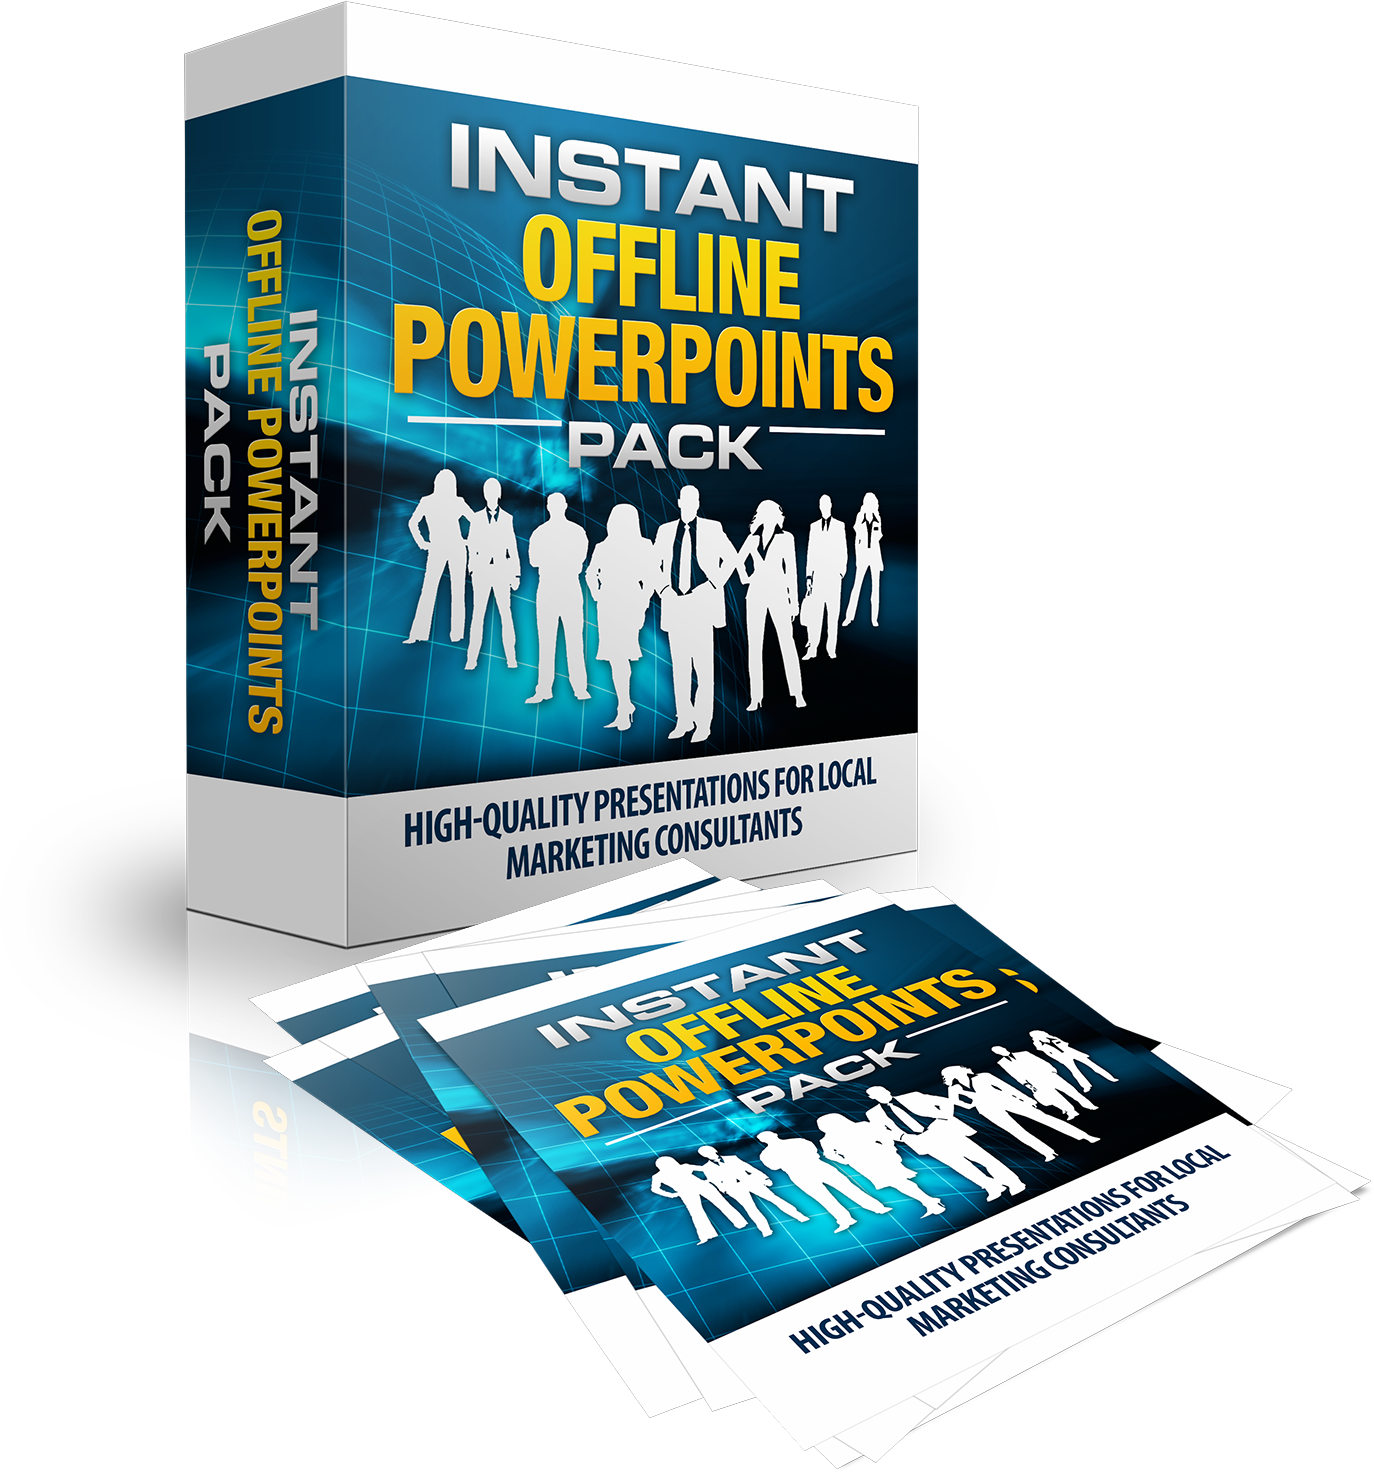 instant_offline_powerpoints_pack_bundle_00